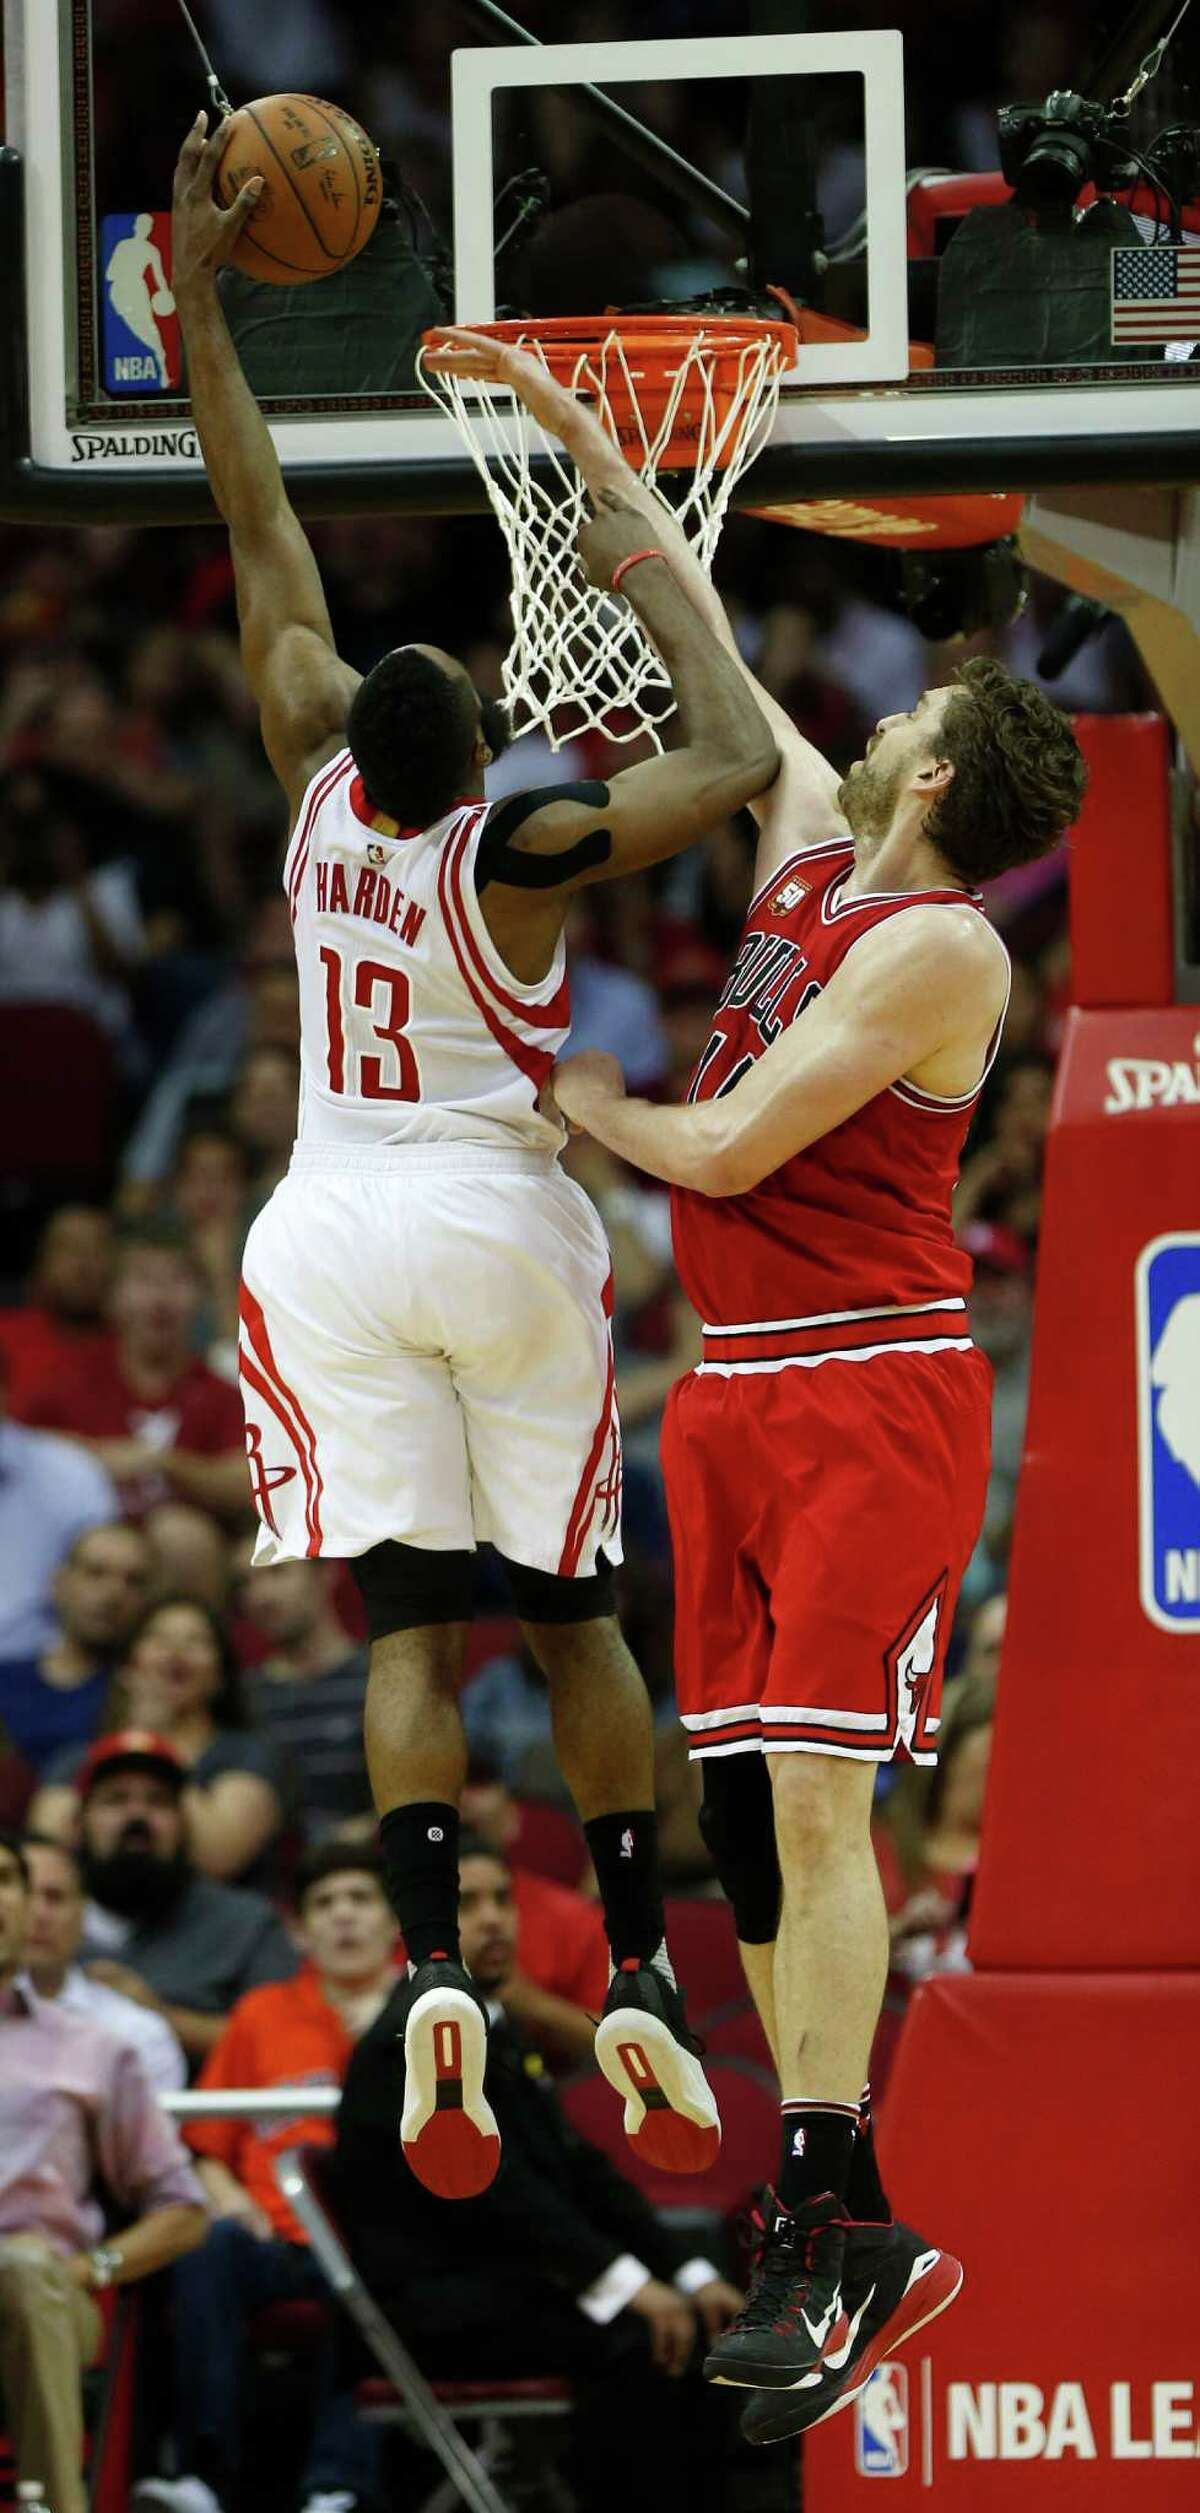 Houston Rockets guard James Harden (13) was fouled by Chicago Bulls center Pau Gasol (16) during the second half of an NBA basketball game at Toyota Center, Thursday, March 31, 2016, in Houston.